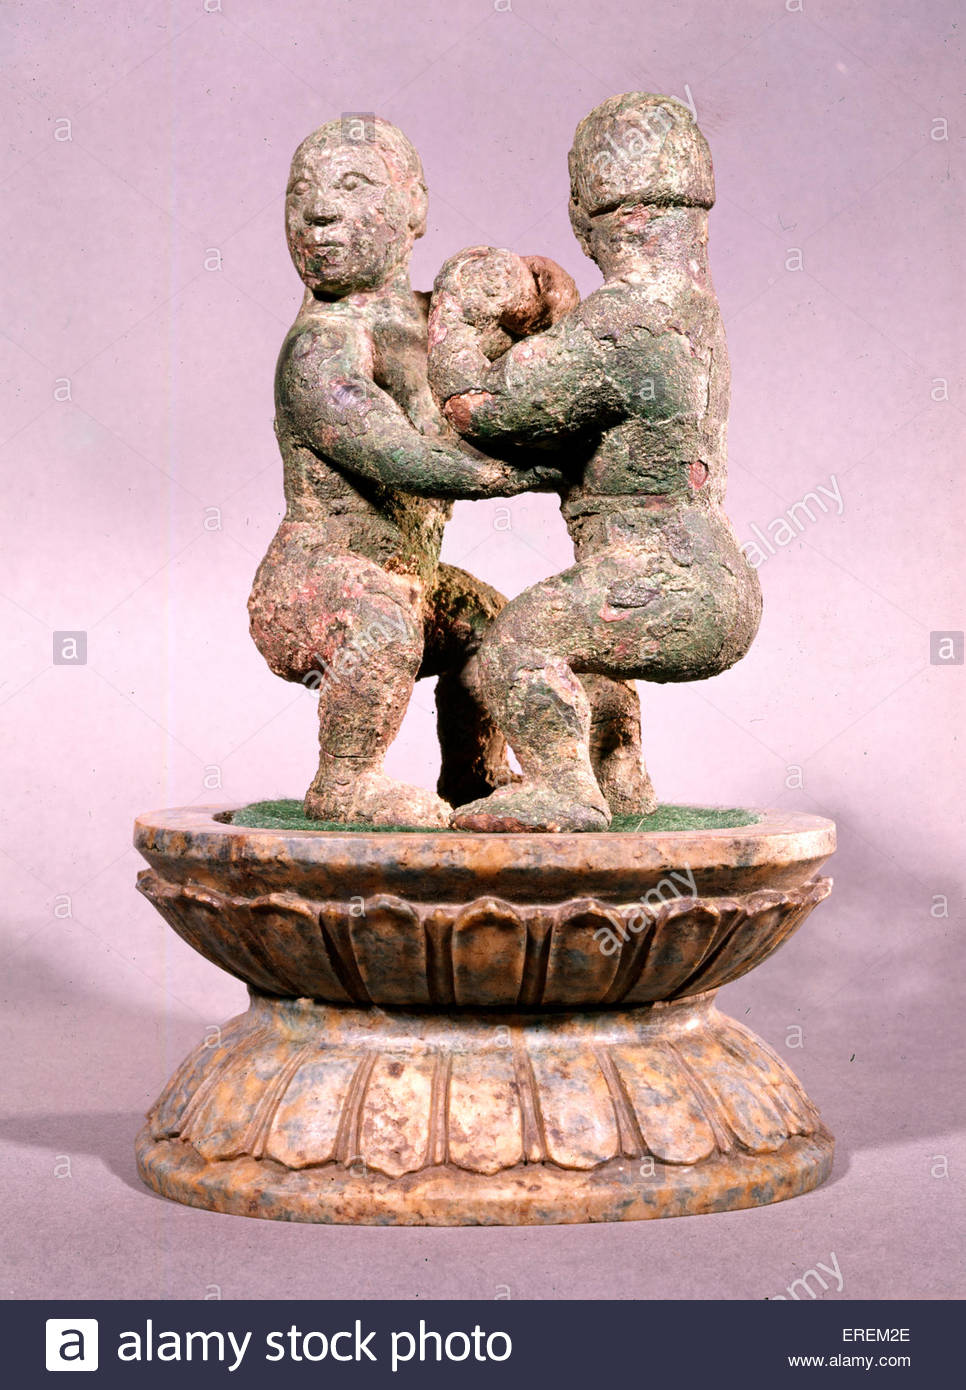 Chinese Wrestlers, small sculpture in bronze. Date unknown. - Stock Image